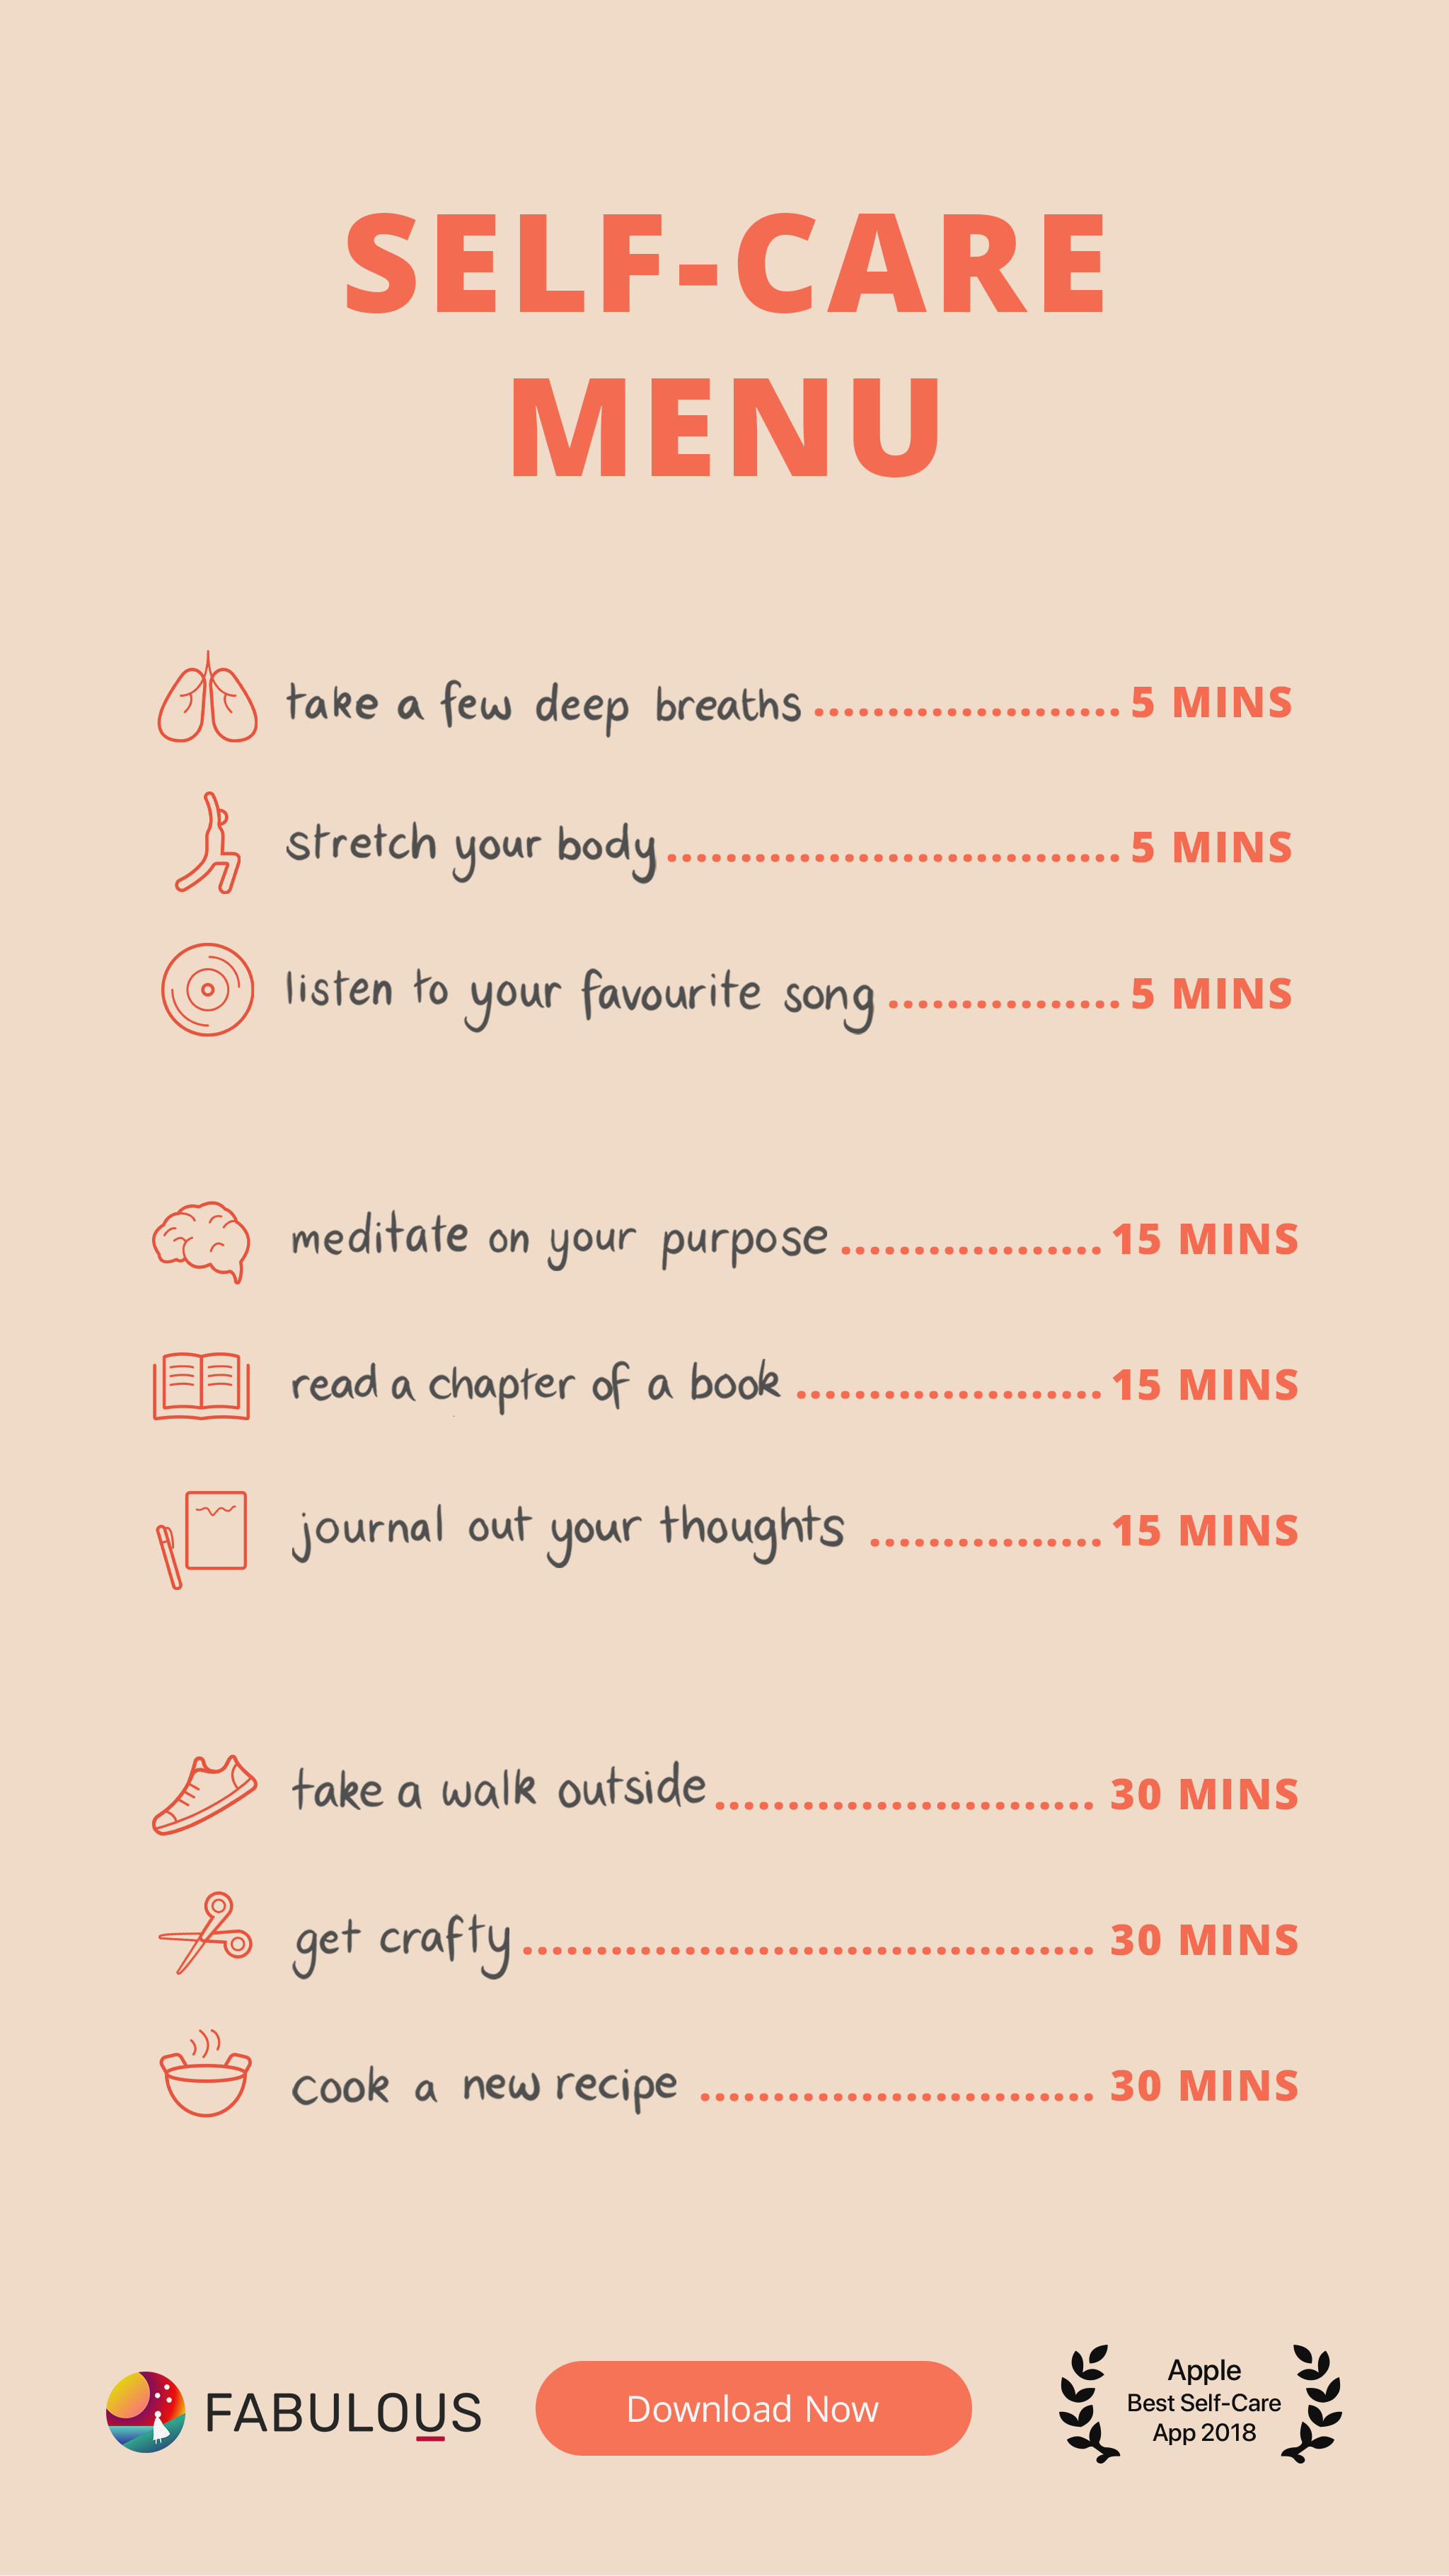 Your Daily Self Care Menu In